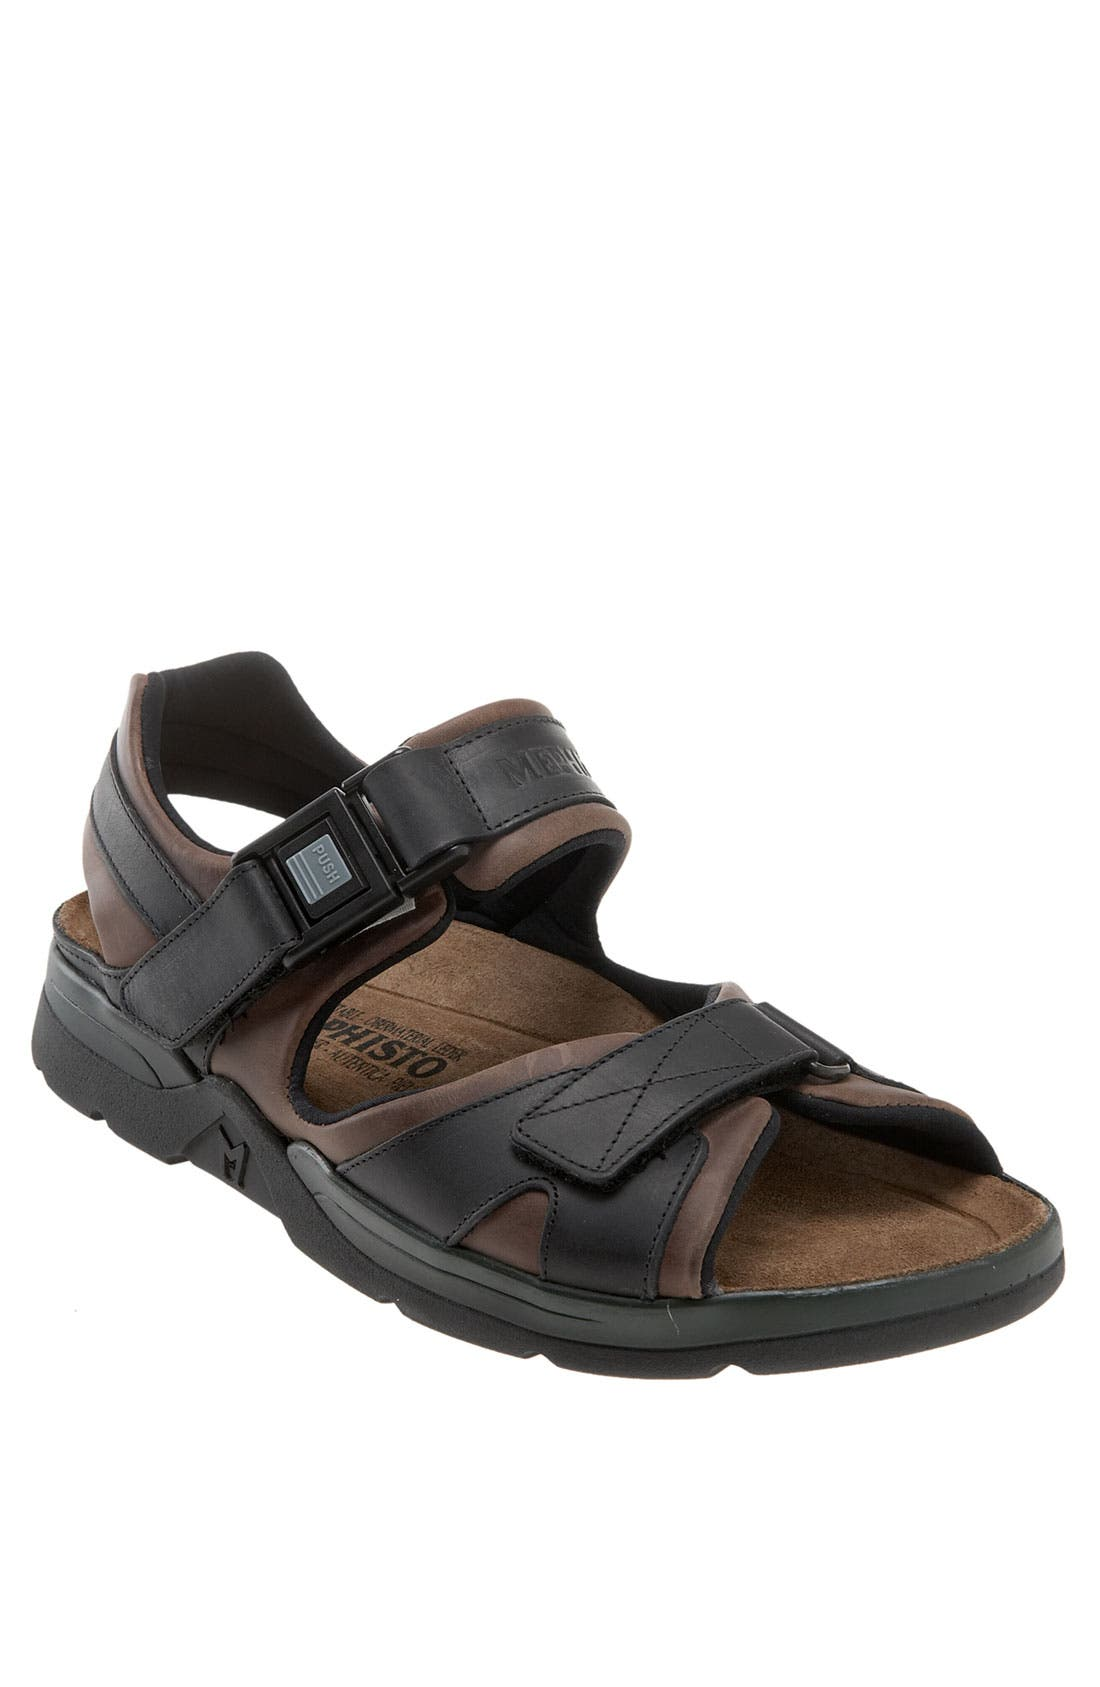 Main Image - Mephisto 'Shark' Sandal (Men)